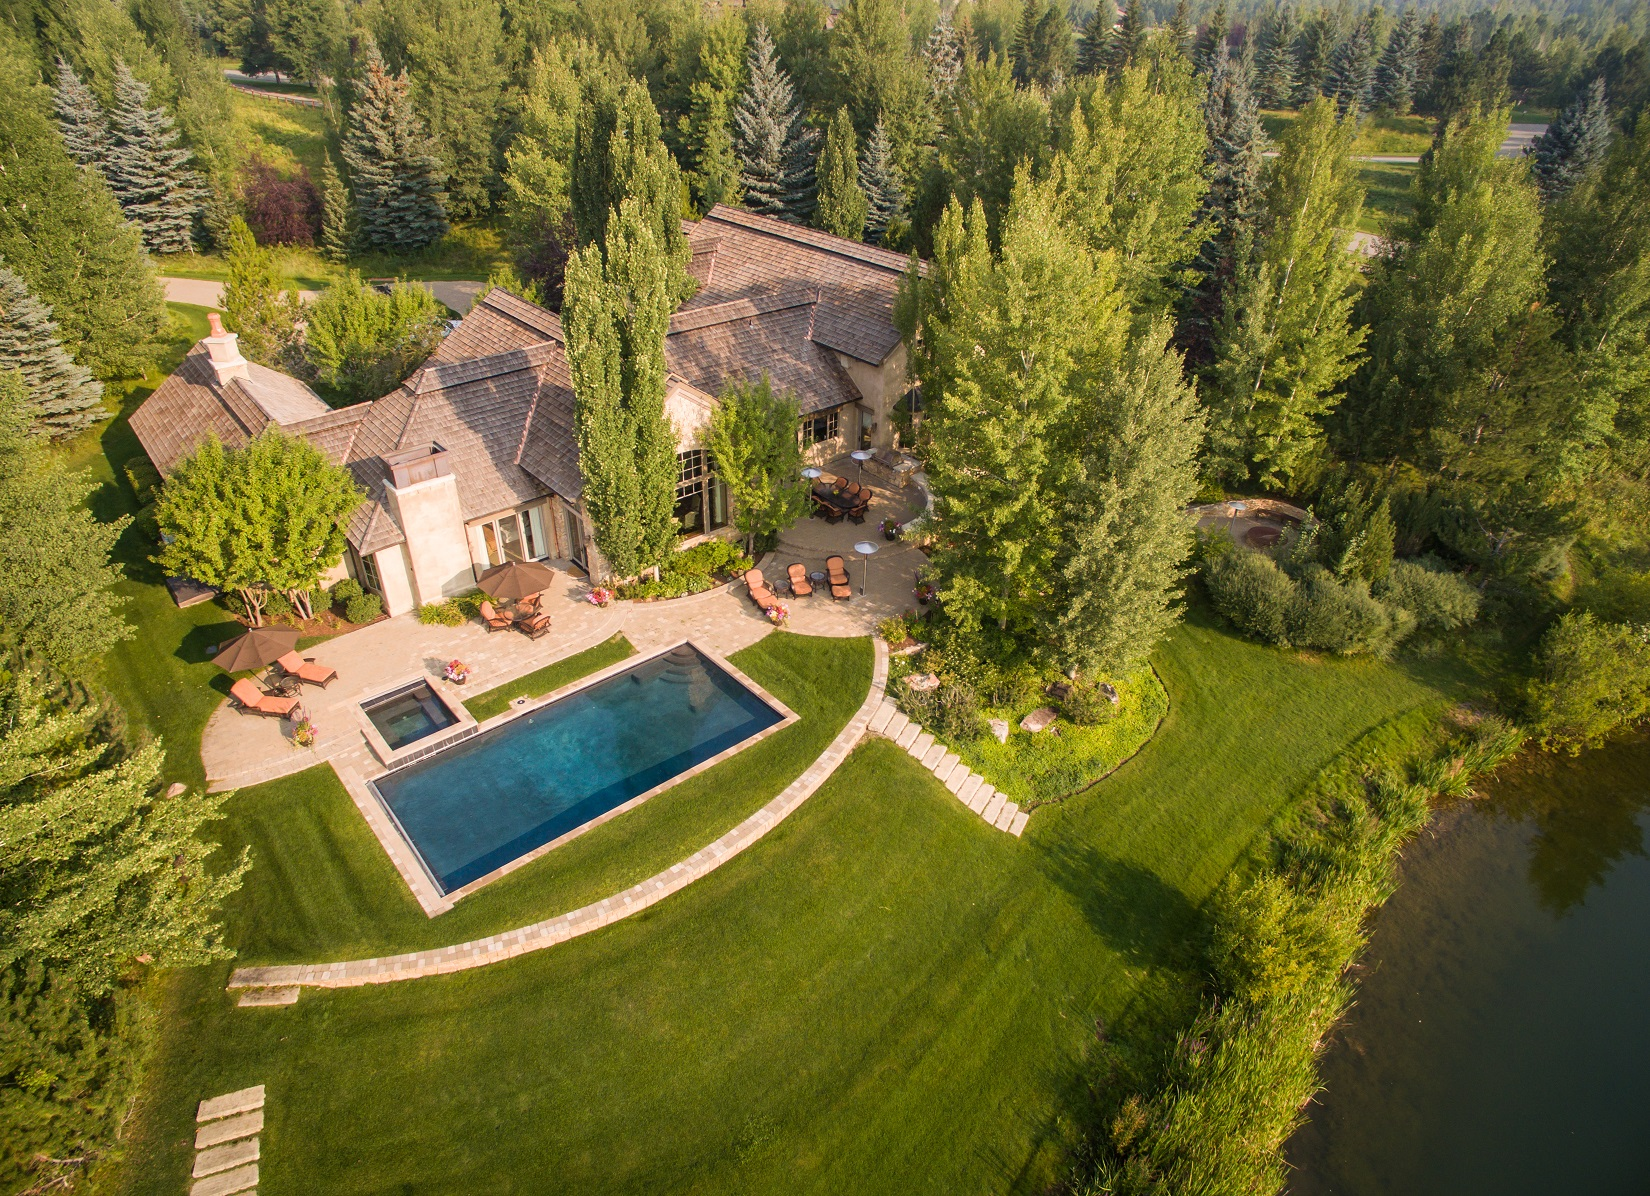 Maison unifamiliale pour l Vente à Golden Eagle 150 Eagle Lake Drive Hailey, Idaho 83333 États-Unis